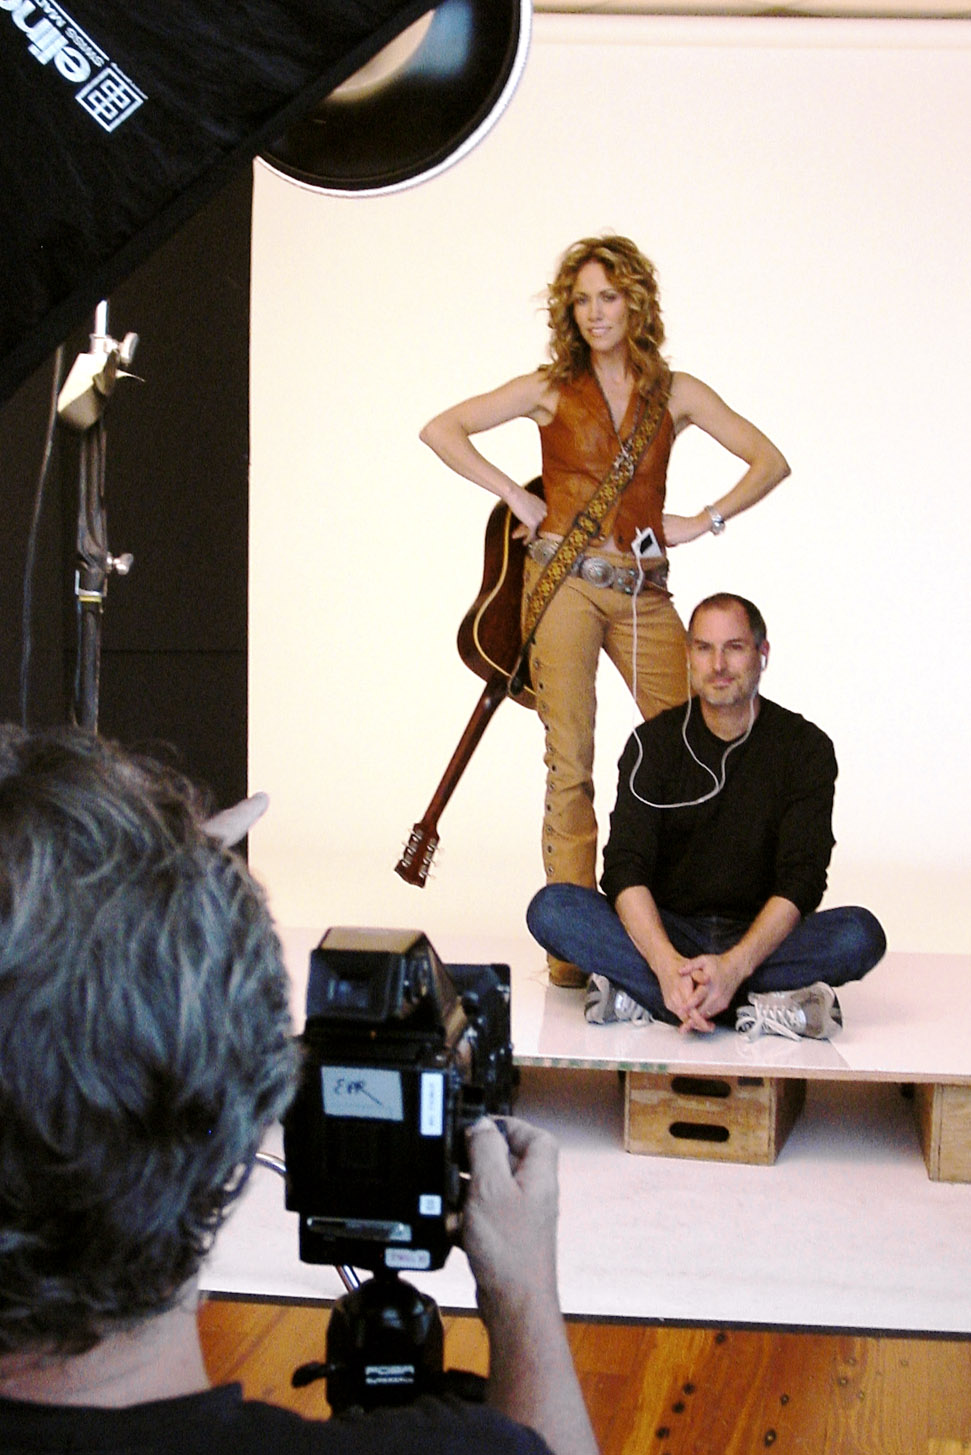 2003, Cover Shoot: When photographer Michael O'Neill shot singer Sheryl Crow and Jobs for a Fortune cover, Schlender was there with a digital camera of his own.